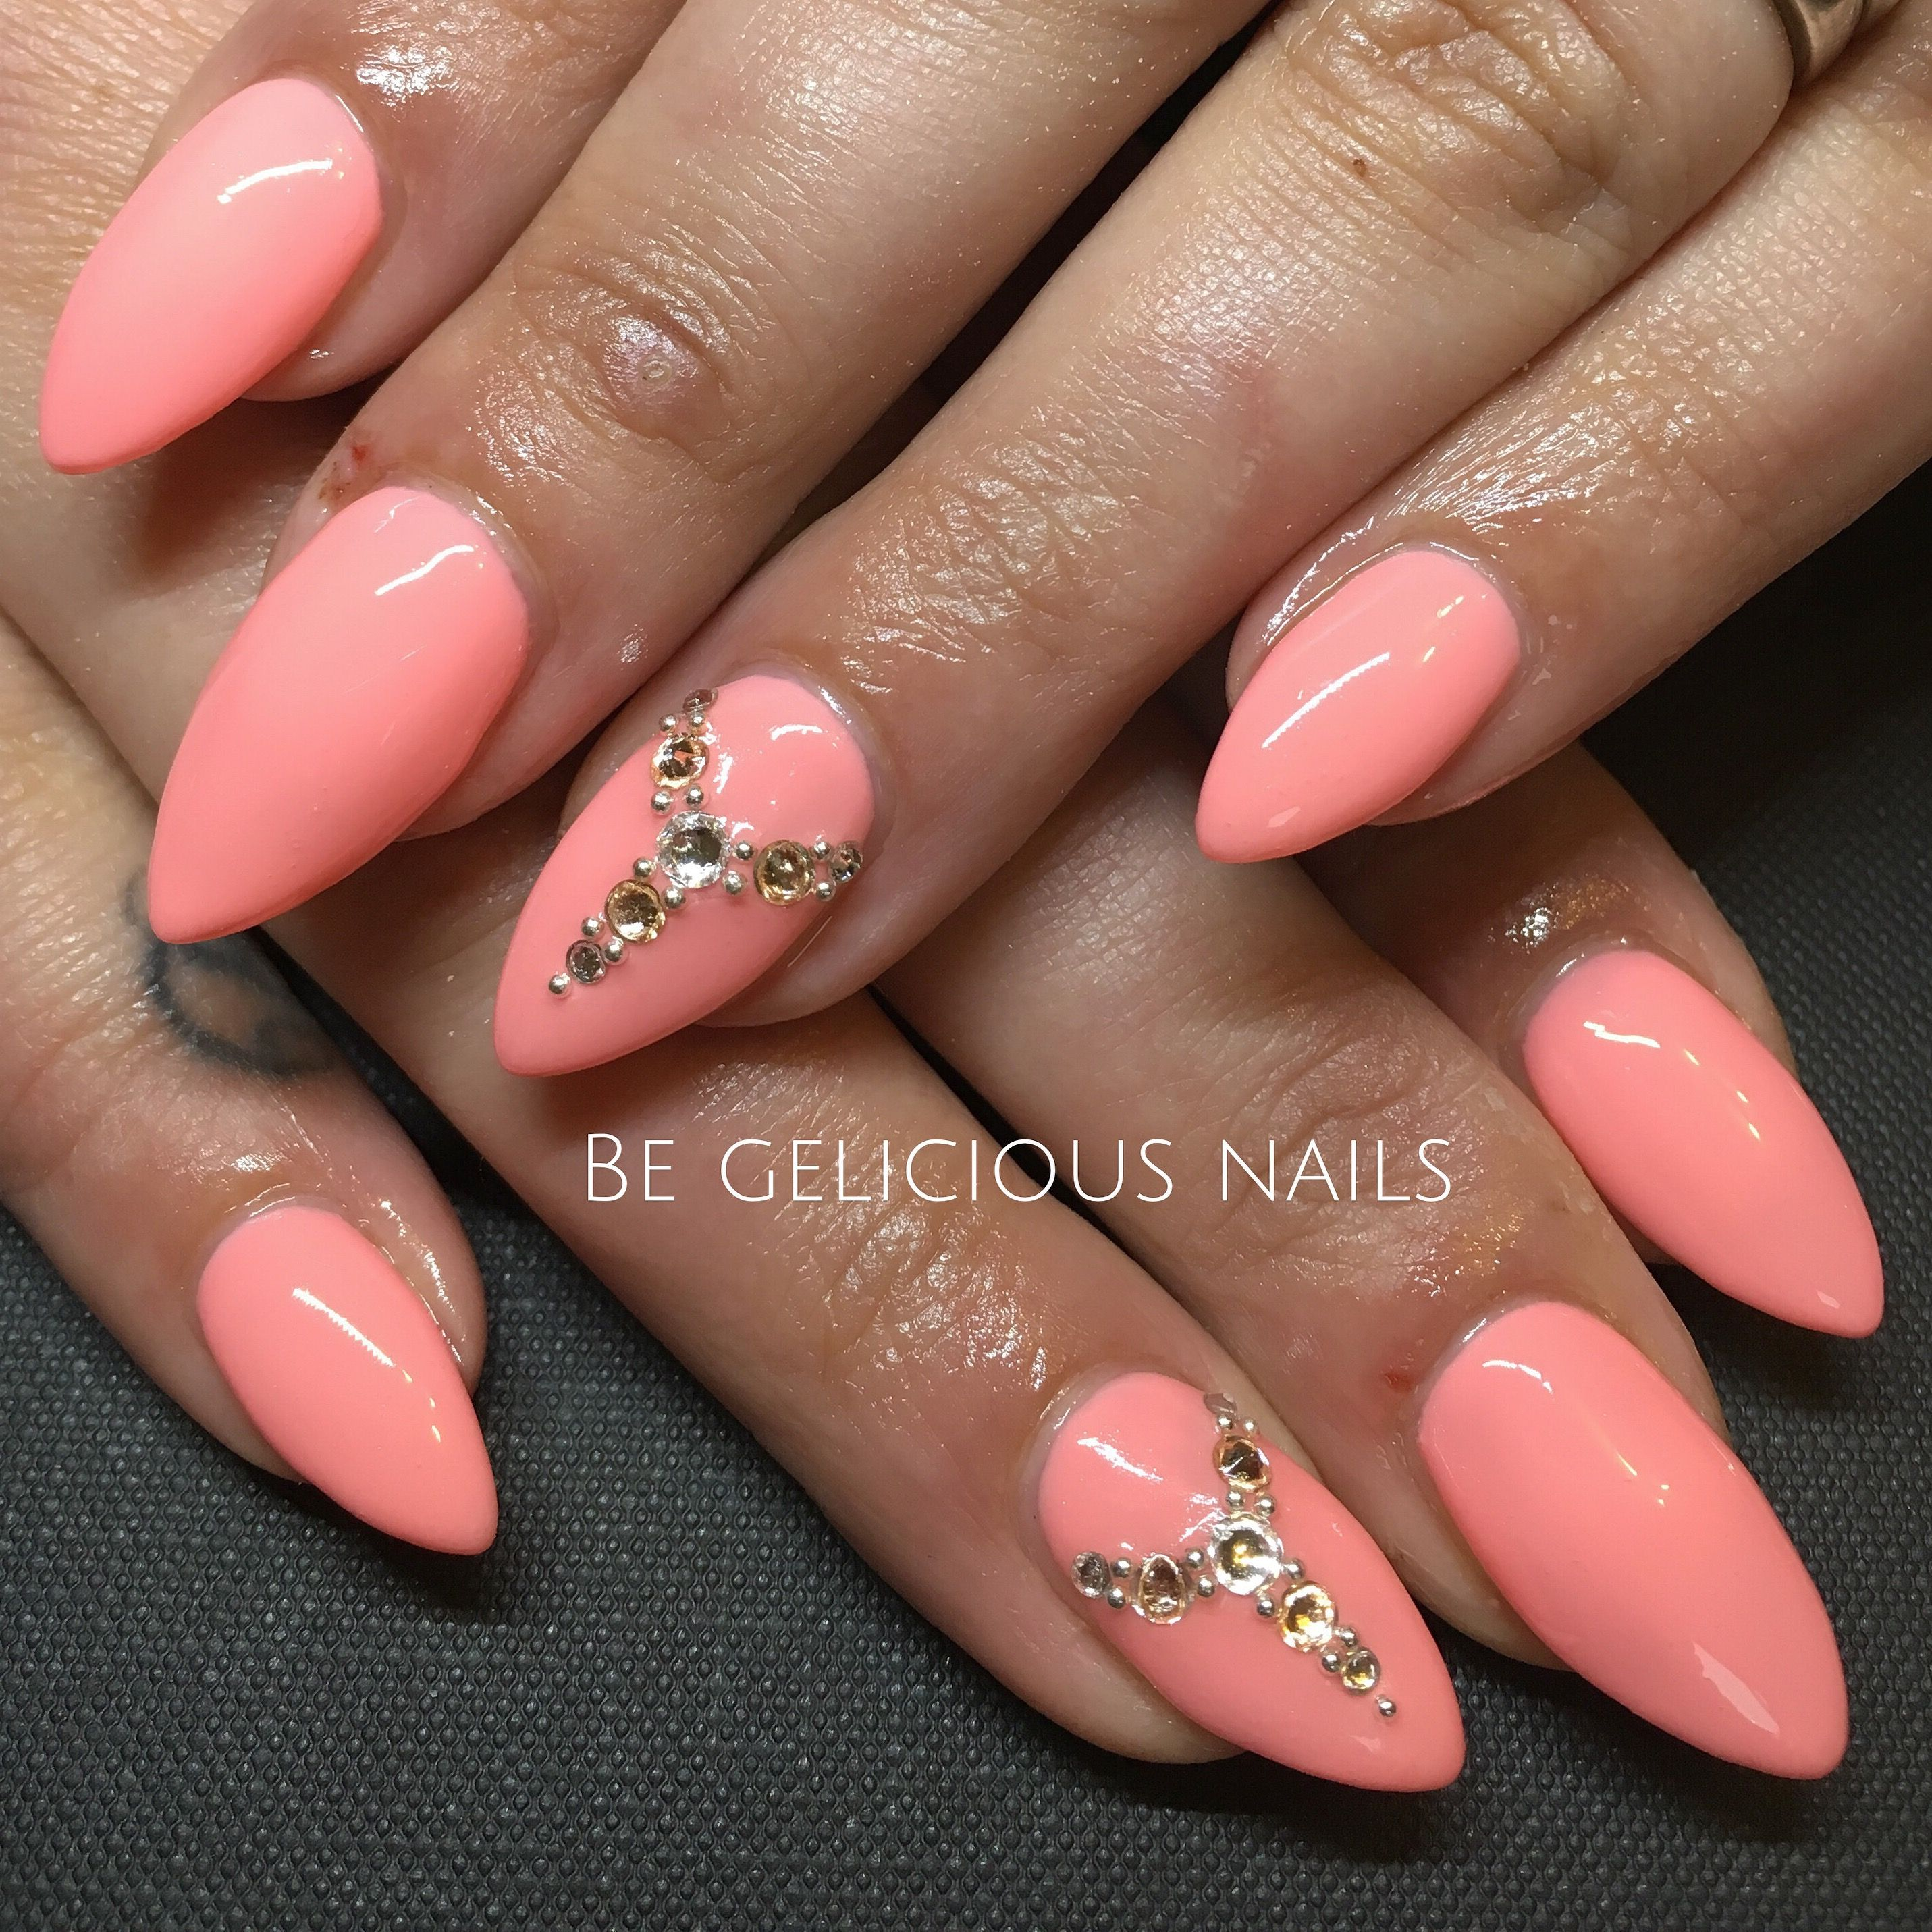 Calgel Nails Gel Nail Art Nail Design Swarovski Coral Summer